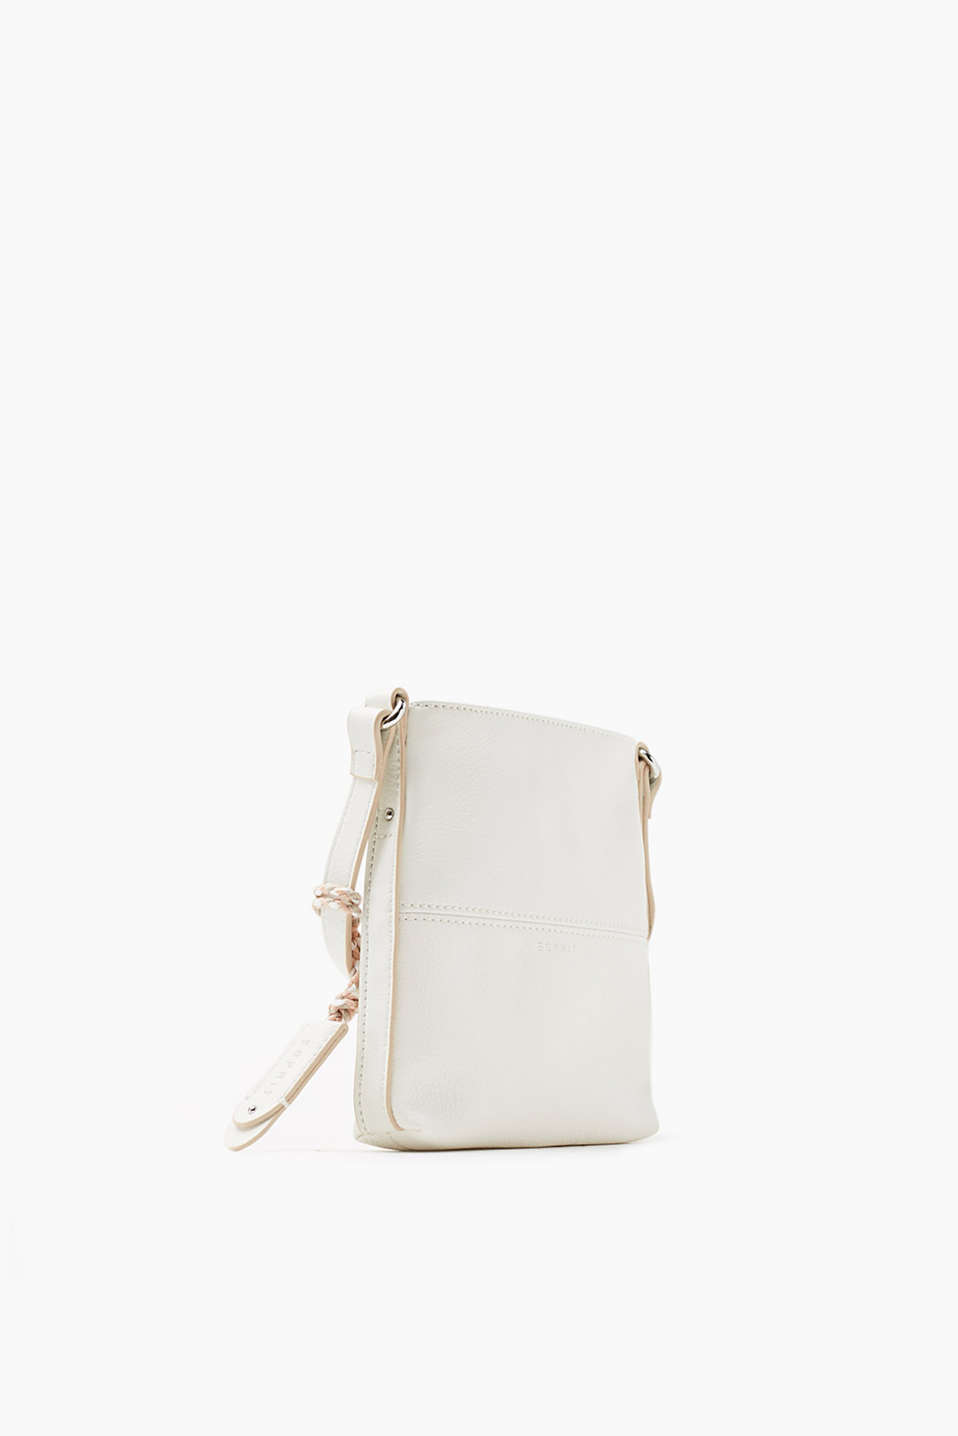 Small, smooth faux leather shoulder bag